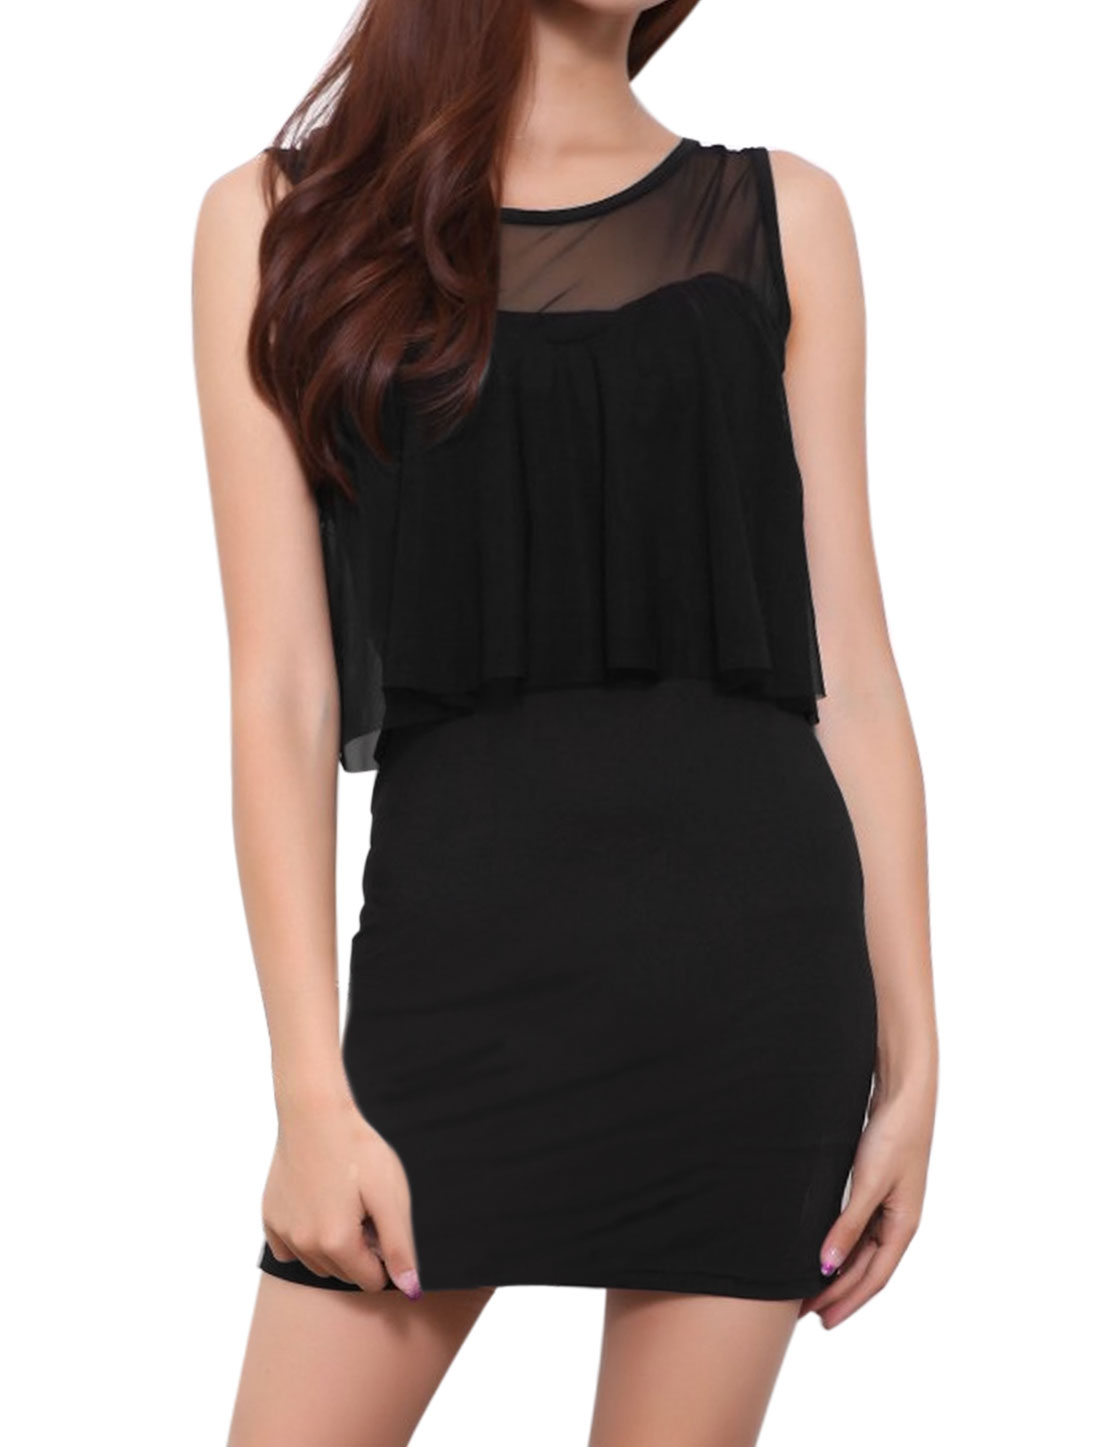 Women Mesh Panel Layered Mini Sheath Party Dress Black XS